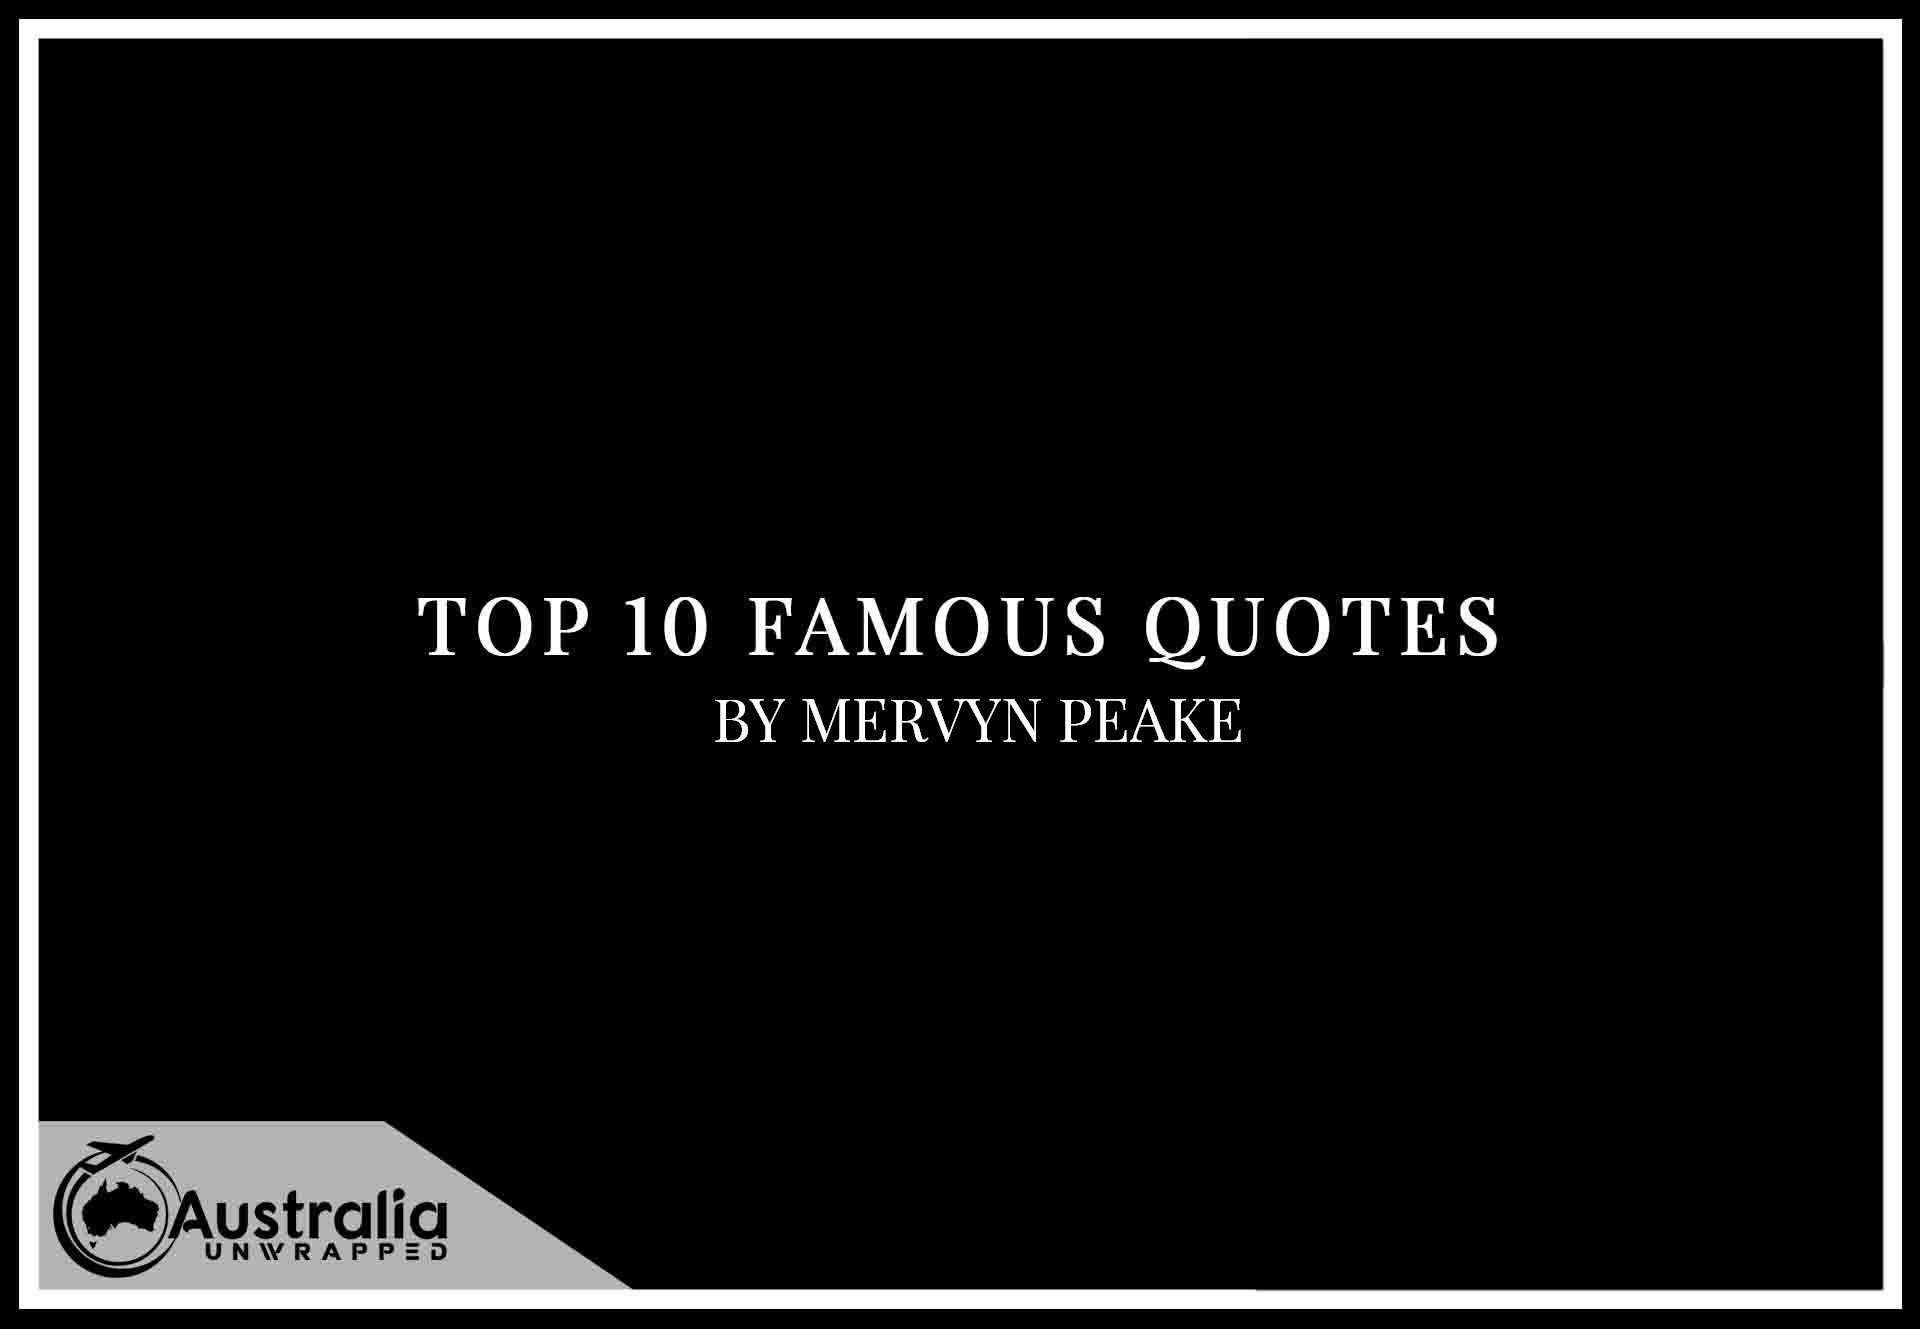 Top 10 Famous Quotes by Author Mervyn Peake